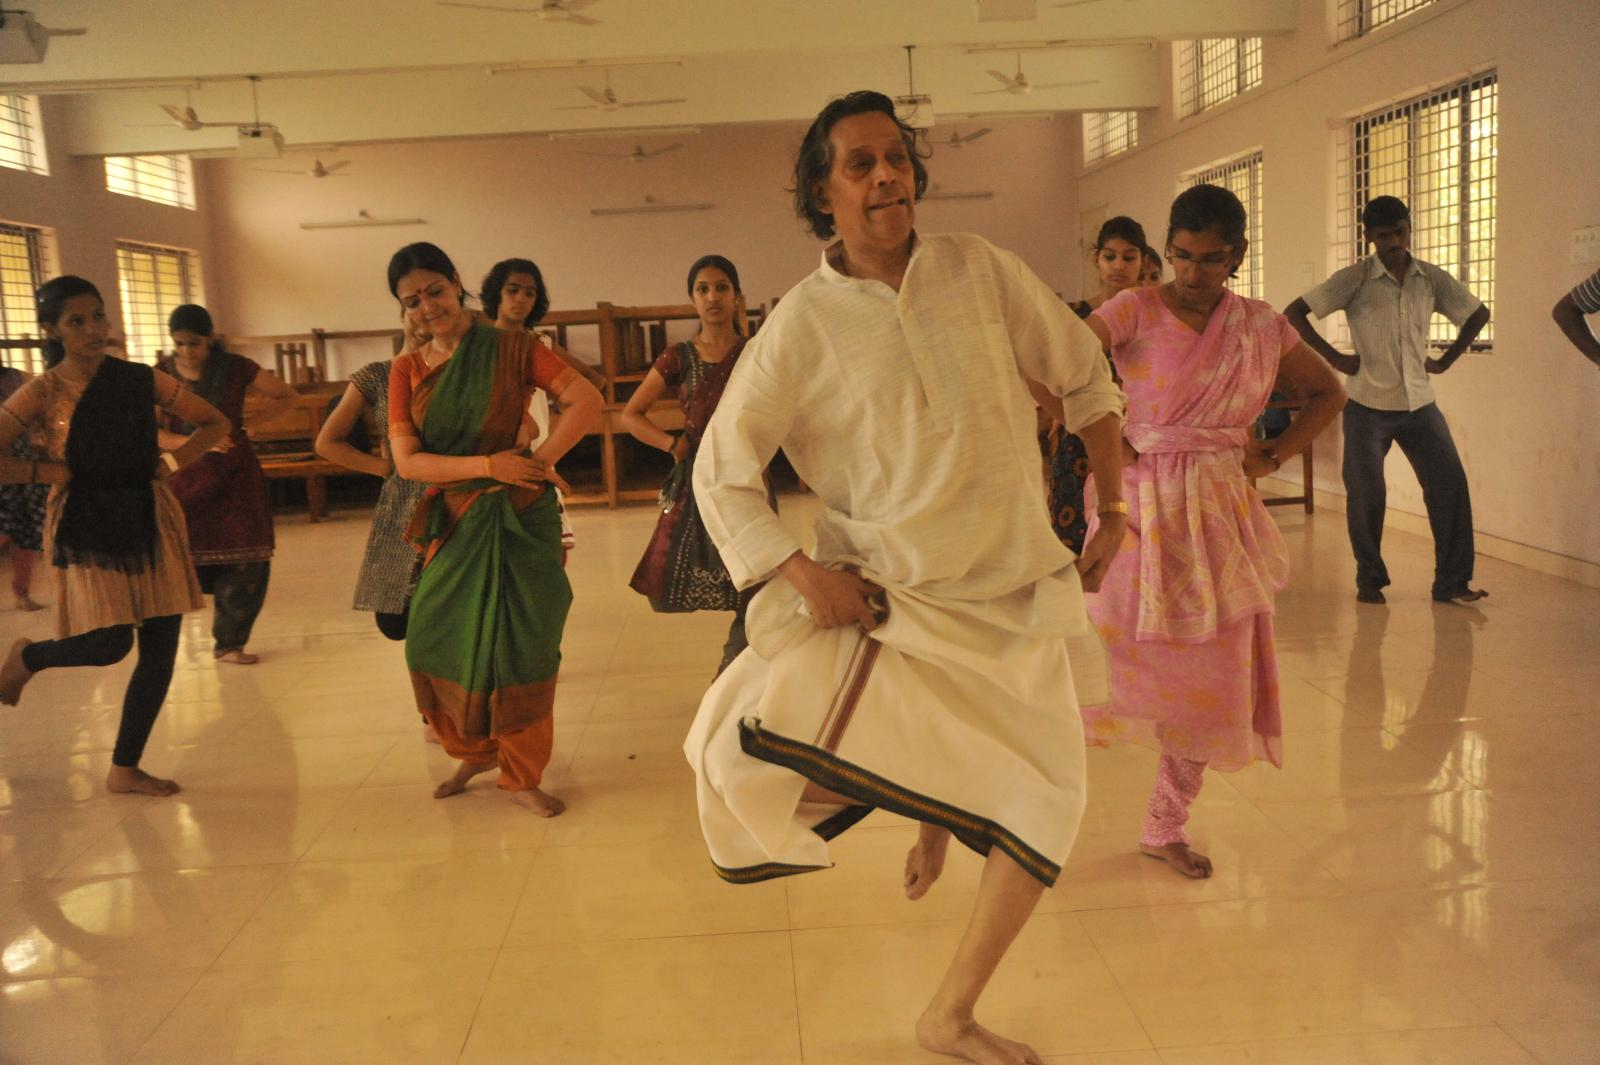 We come dancing from Kuchipudi village of Andhra..